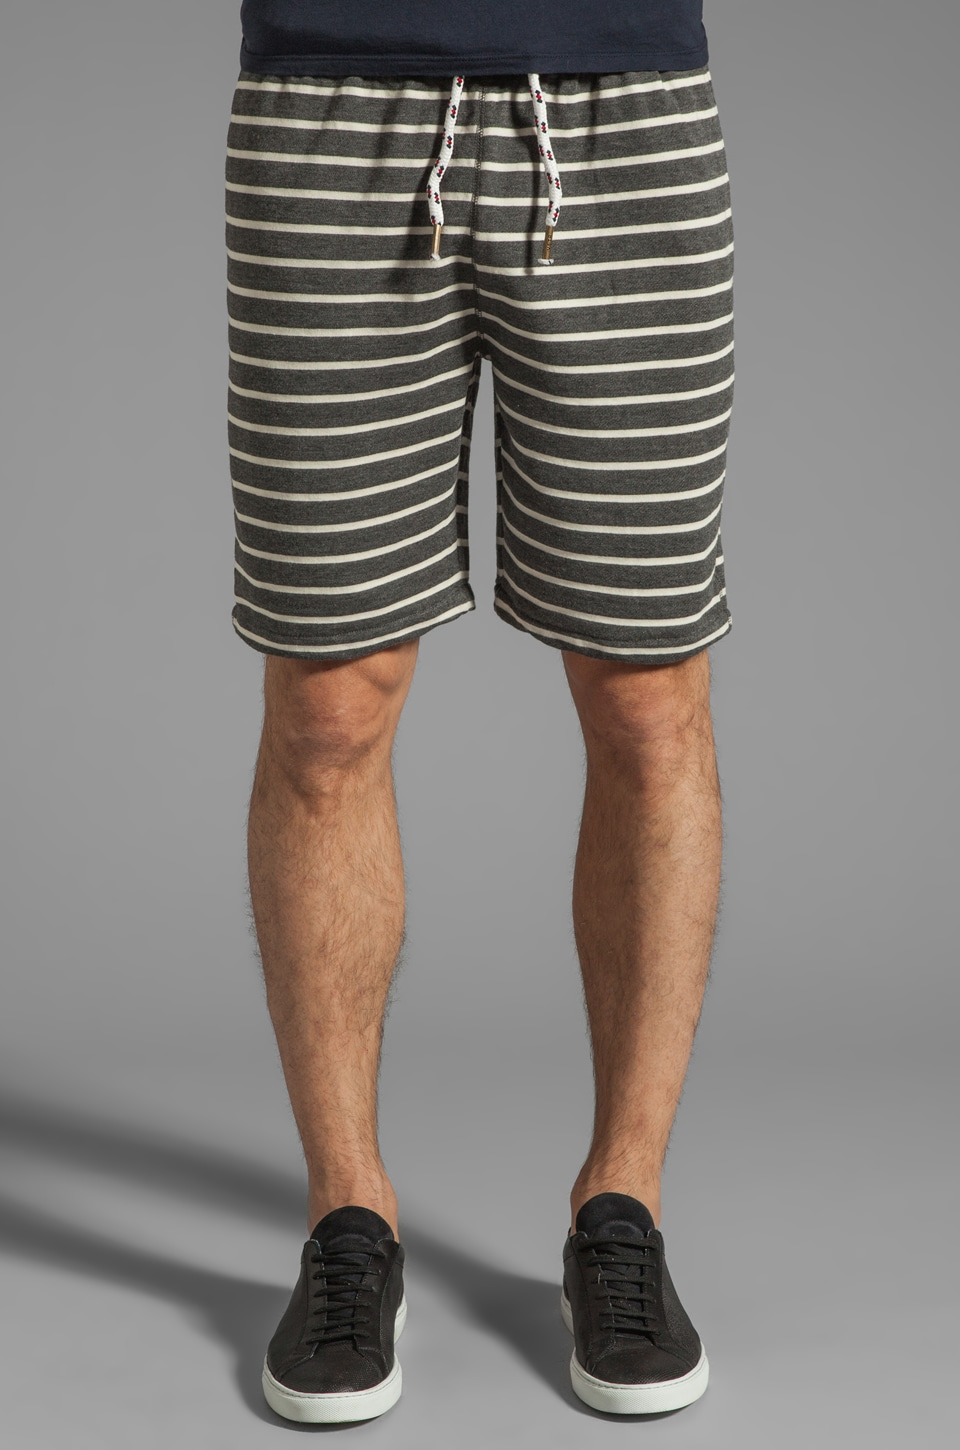 V.S.T.R Transit Short in Charcoal